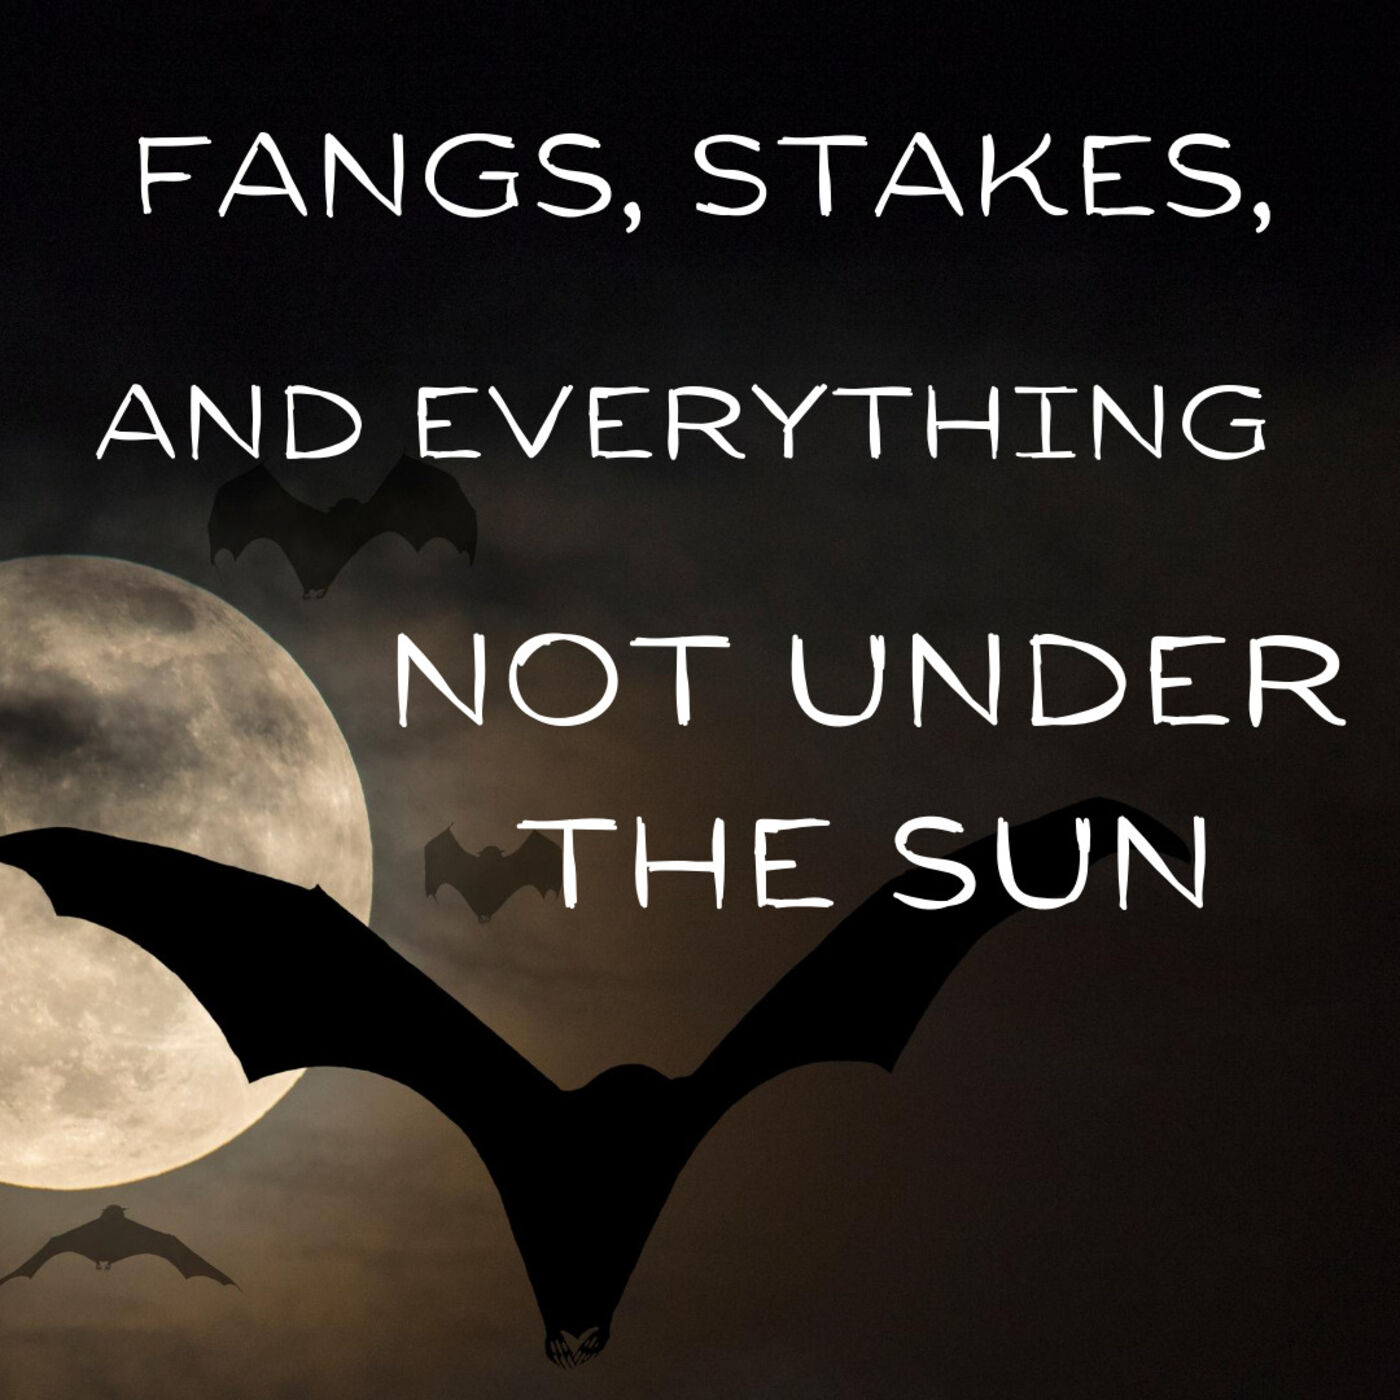 Fangs, Stakes, and Everything Not Under the Sun